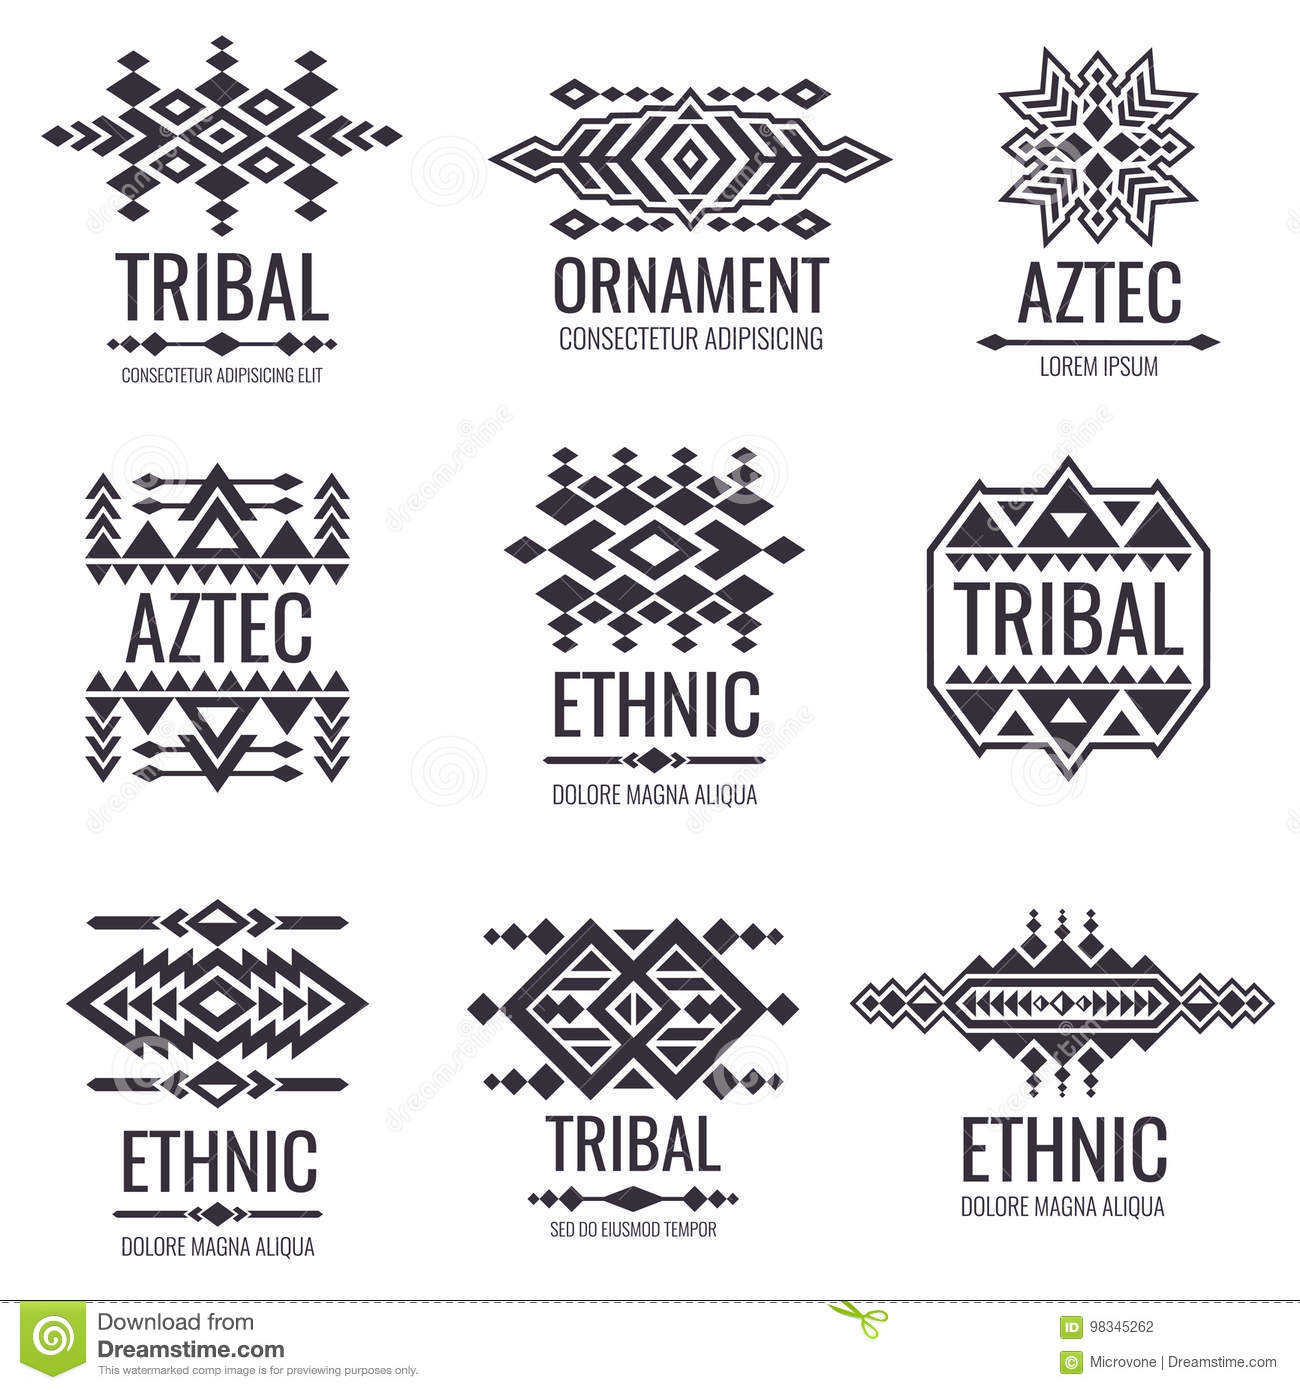 Navajo tattoo designs Mexican Indian Graphics For Tattoo Designs Dreamstimecom Tribal Aztec Vector Pattern Indian Graphics For Tattoo Designs